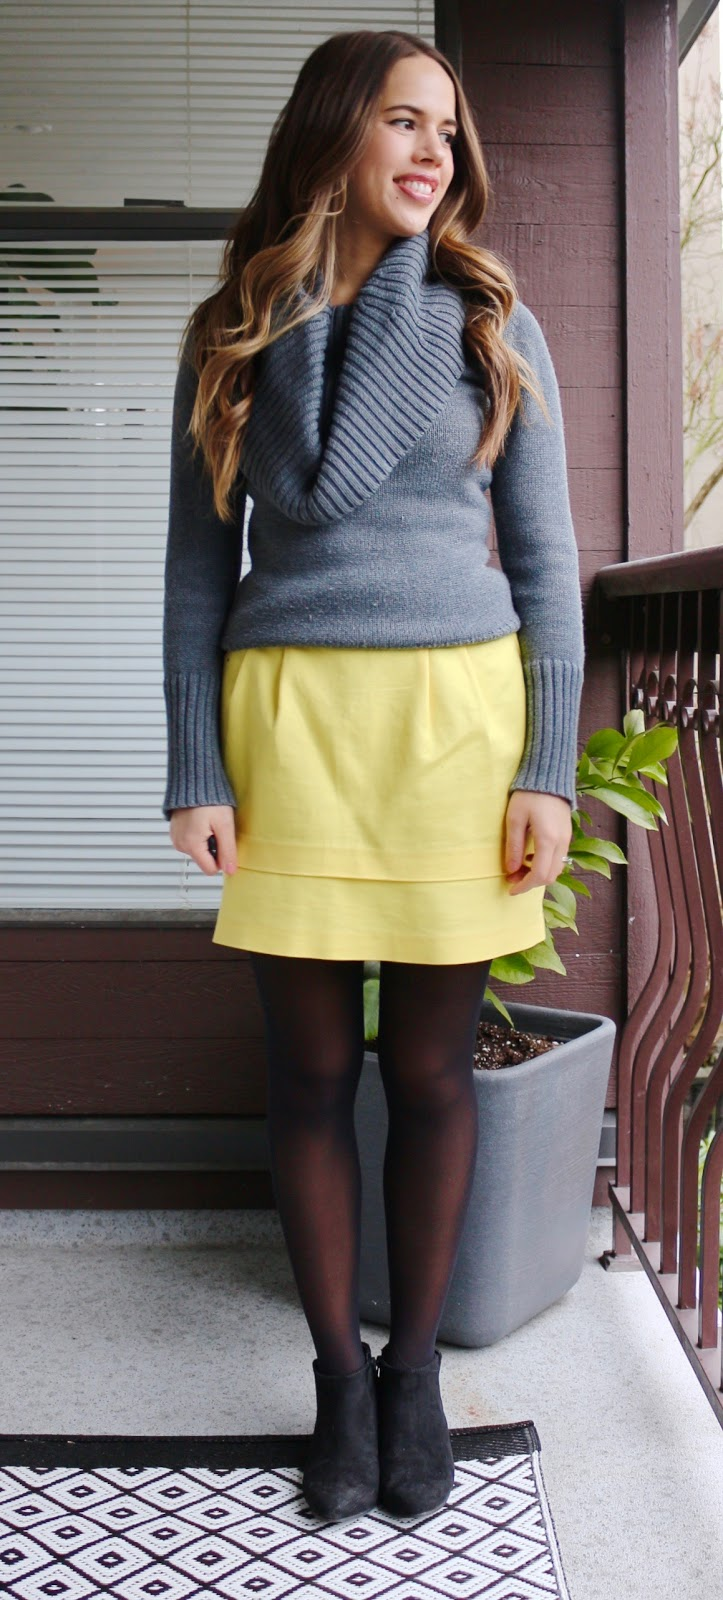 Jules in Flats - January Work Outfits (Cowl Neck Sweater with Yellow Mini Skirt)